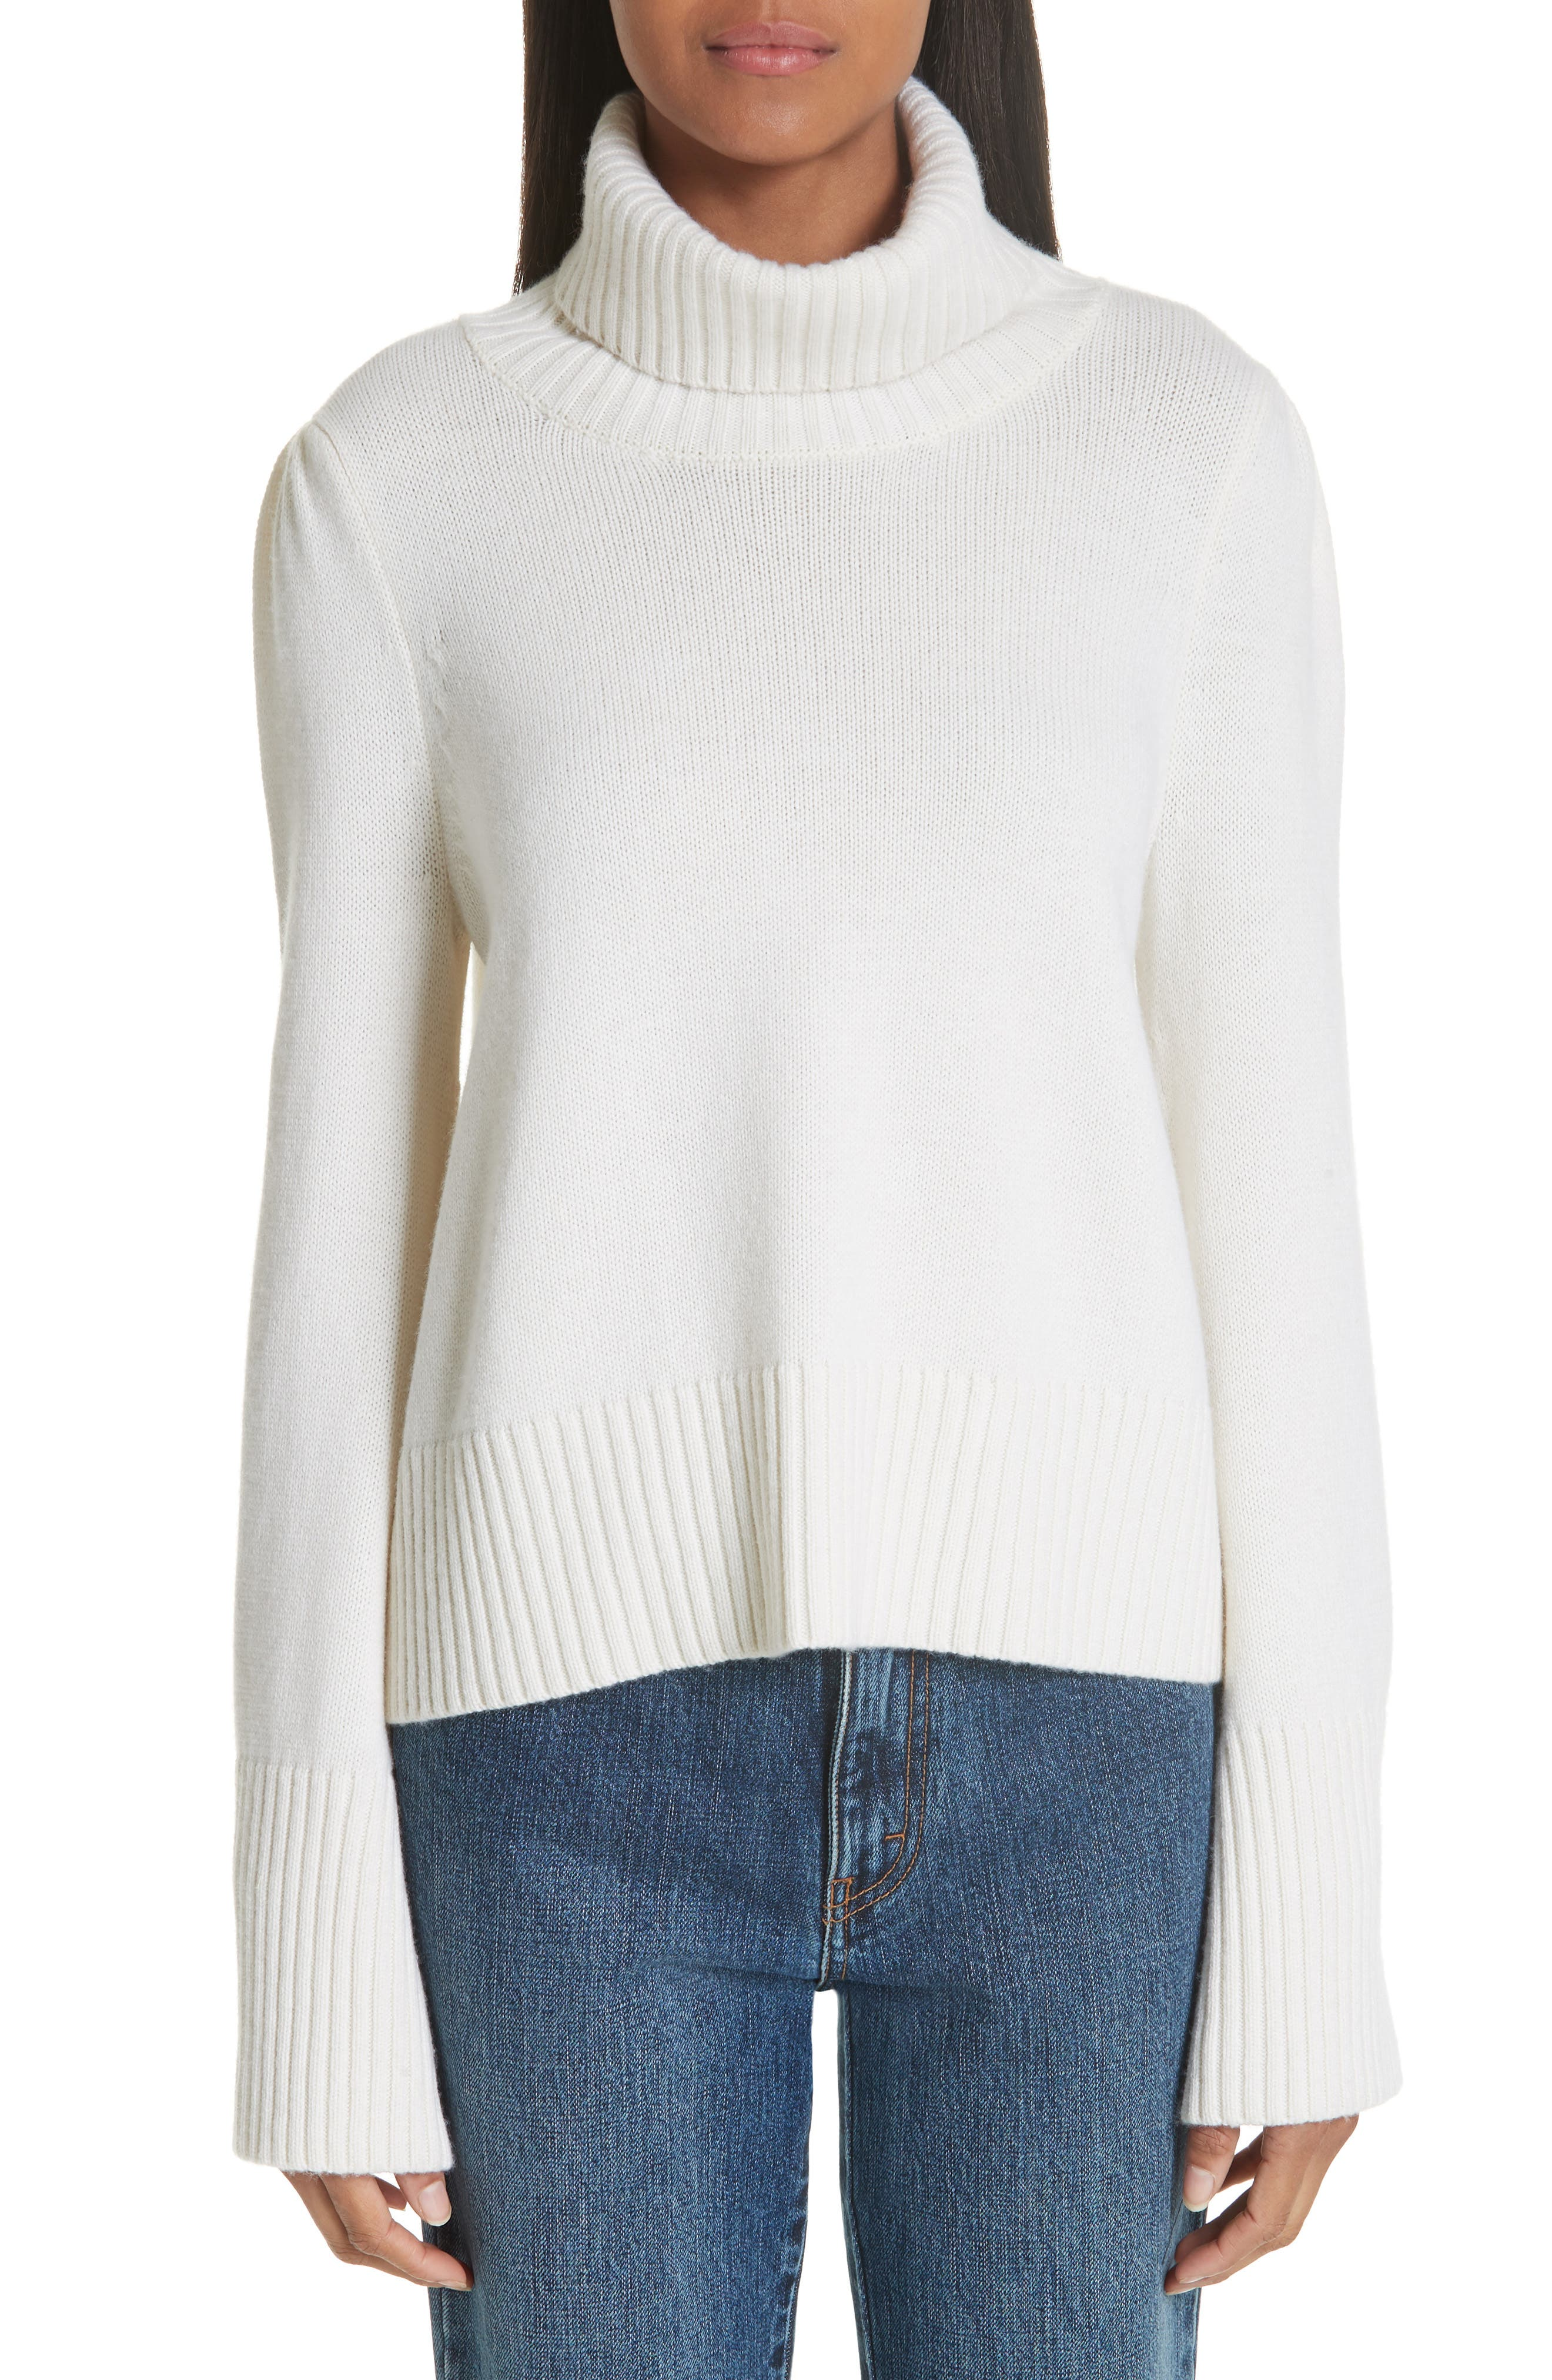 Co Essentials Flare Sleeve Wool & Cashmere Turtleneck Sweater, Ivory